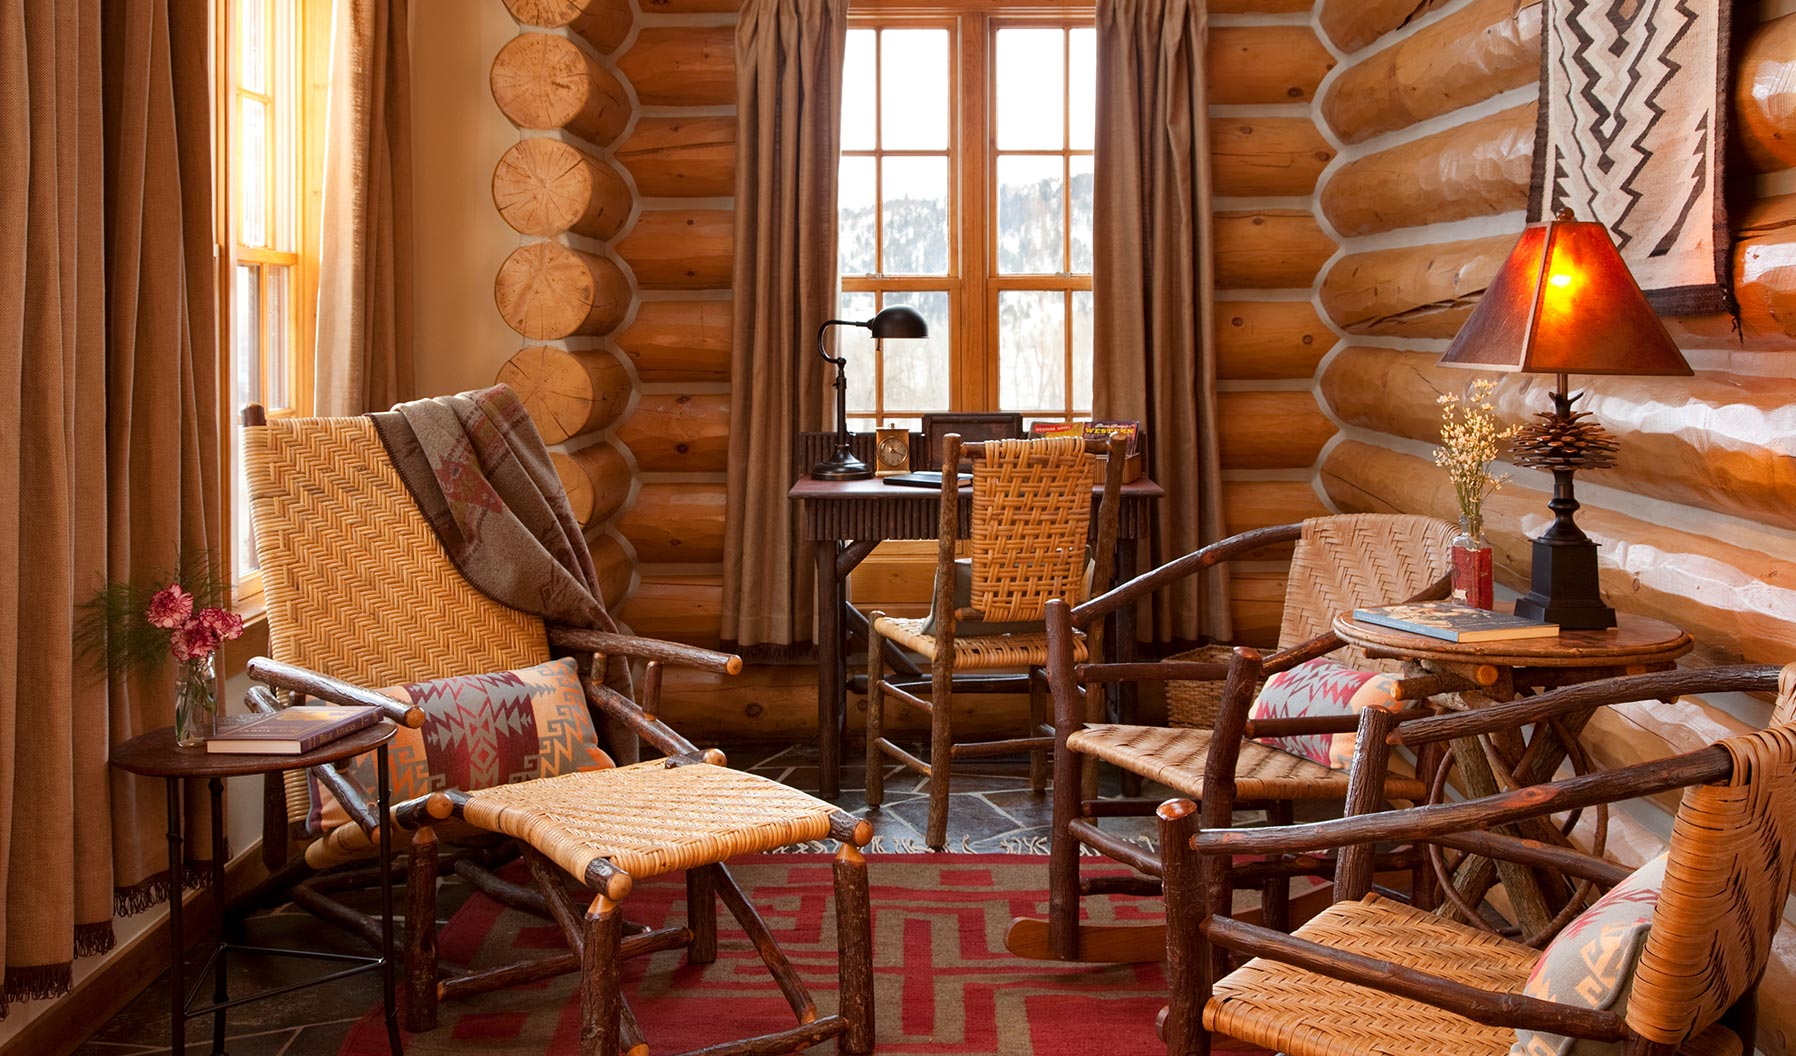 Seating area inside a wooden cabin at The Ranch At Rock Creek